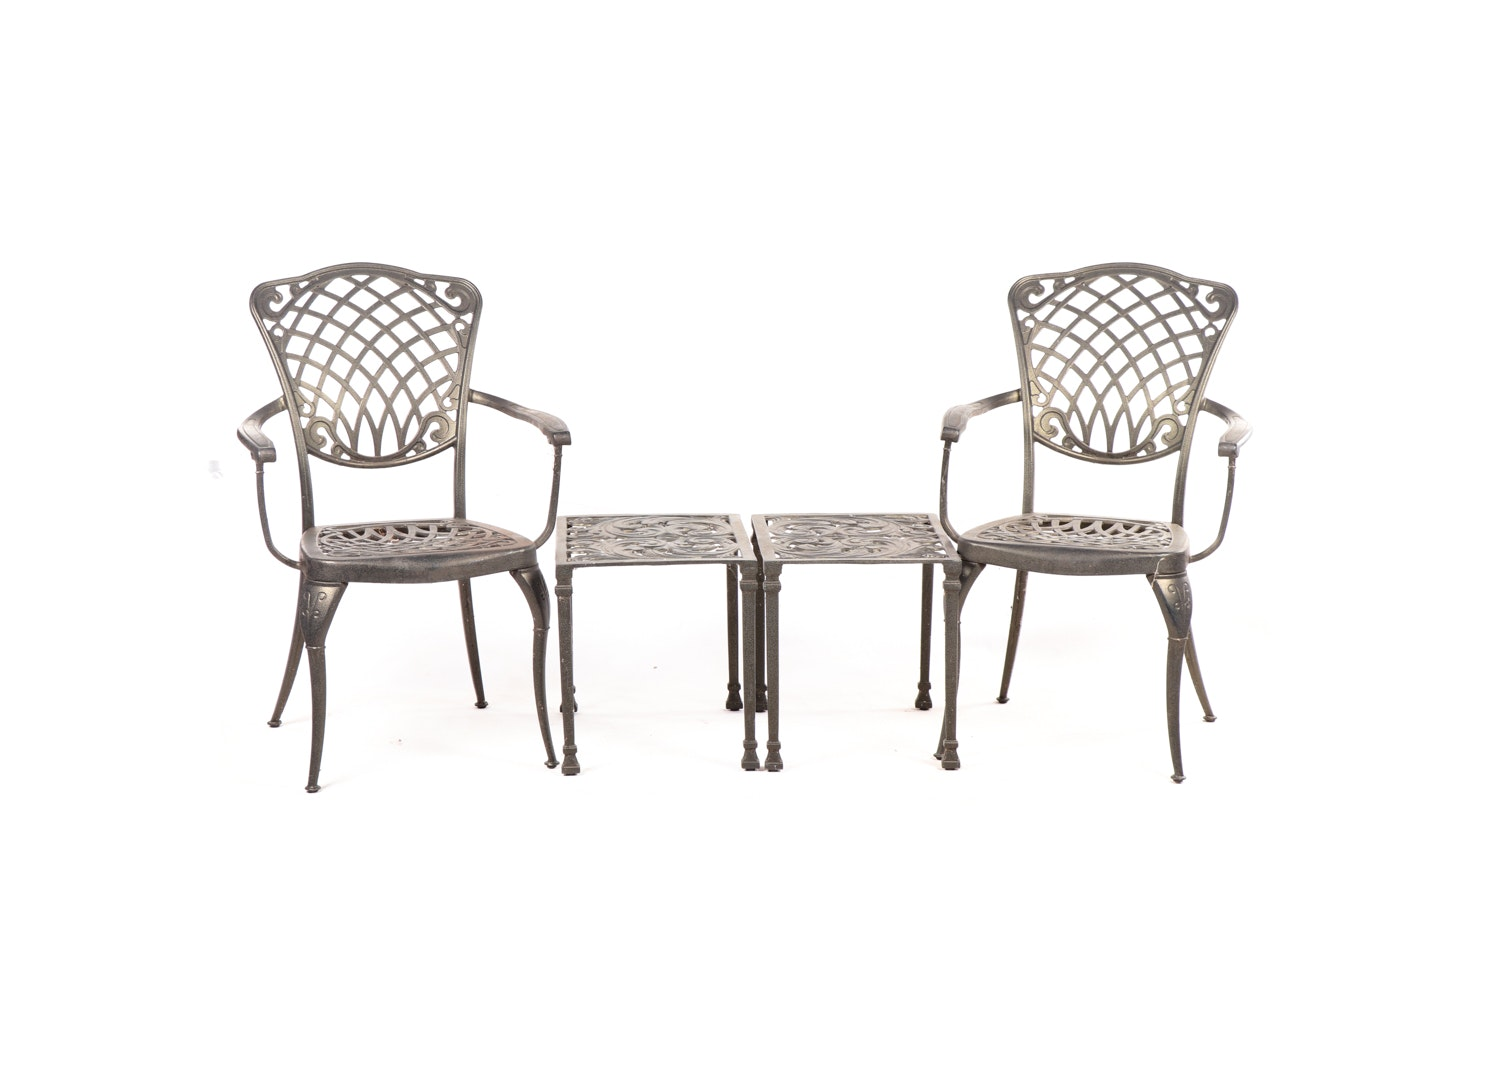 Contemporary Cast Metal Patio Chairs and Tables Set